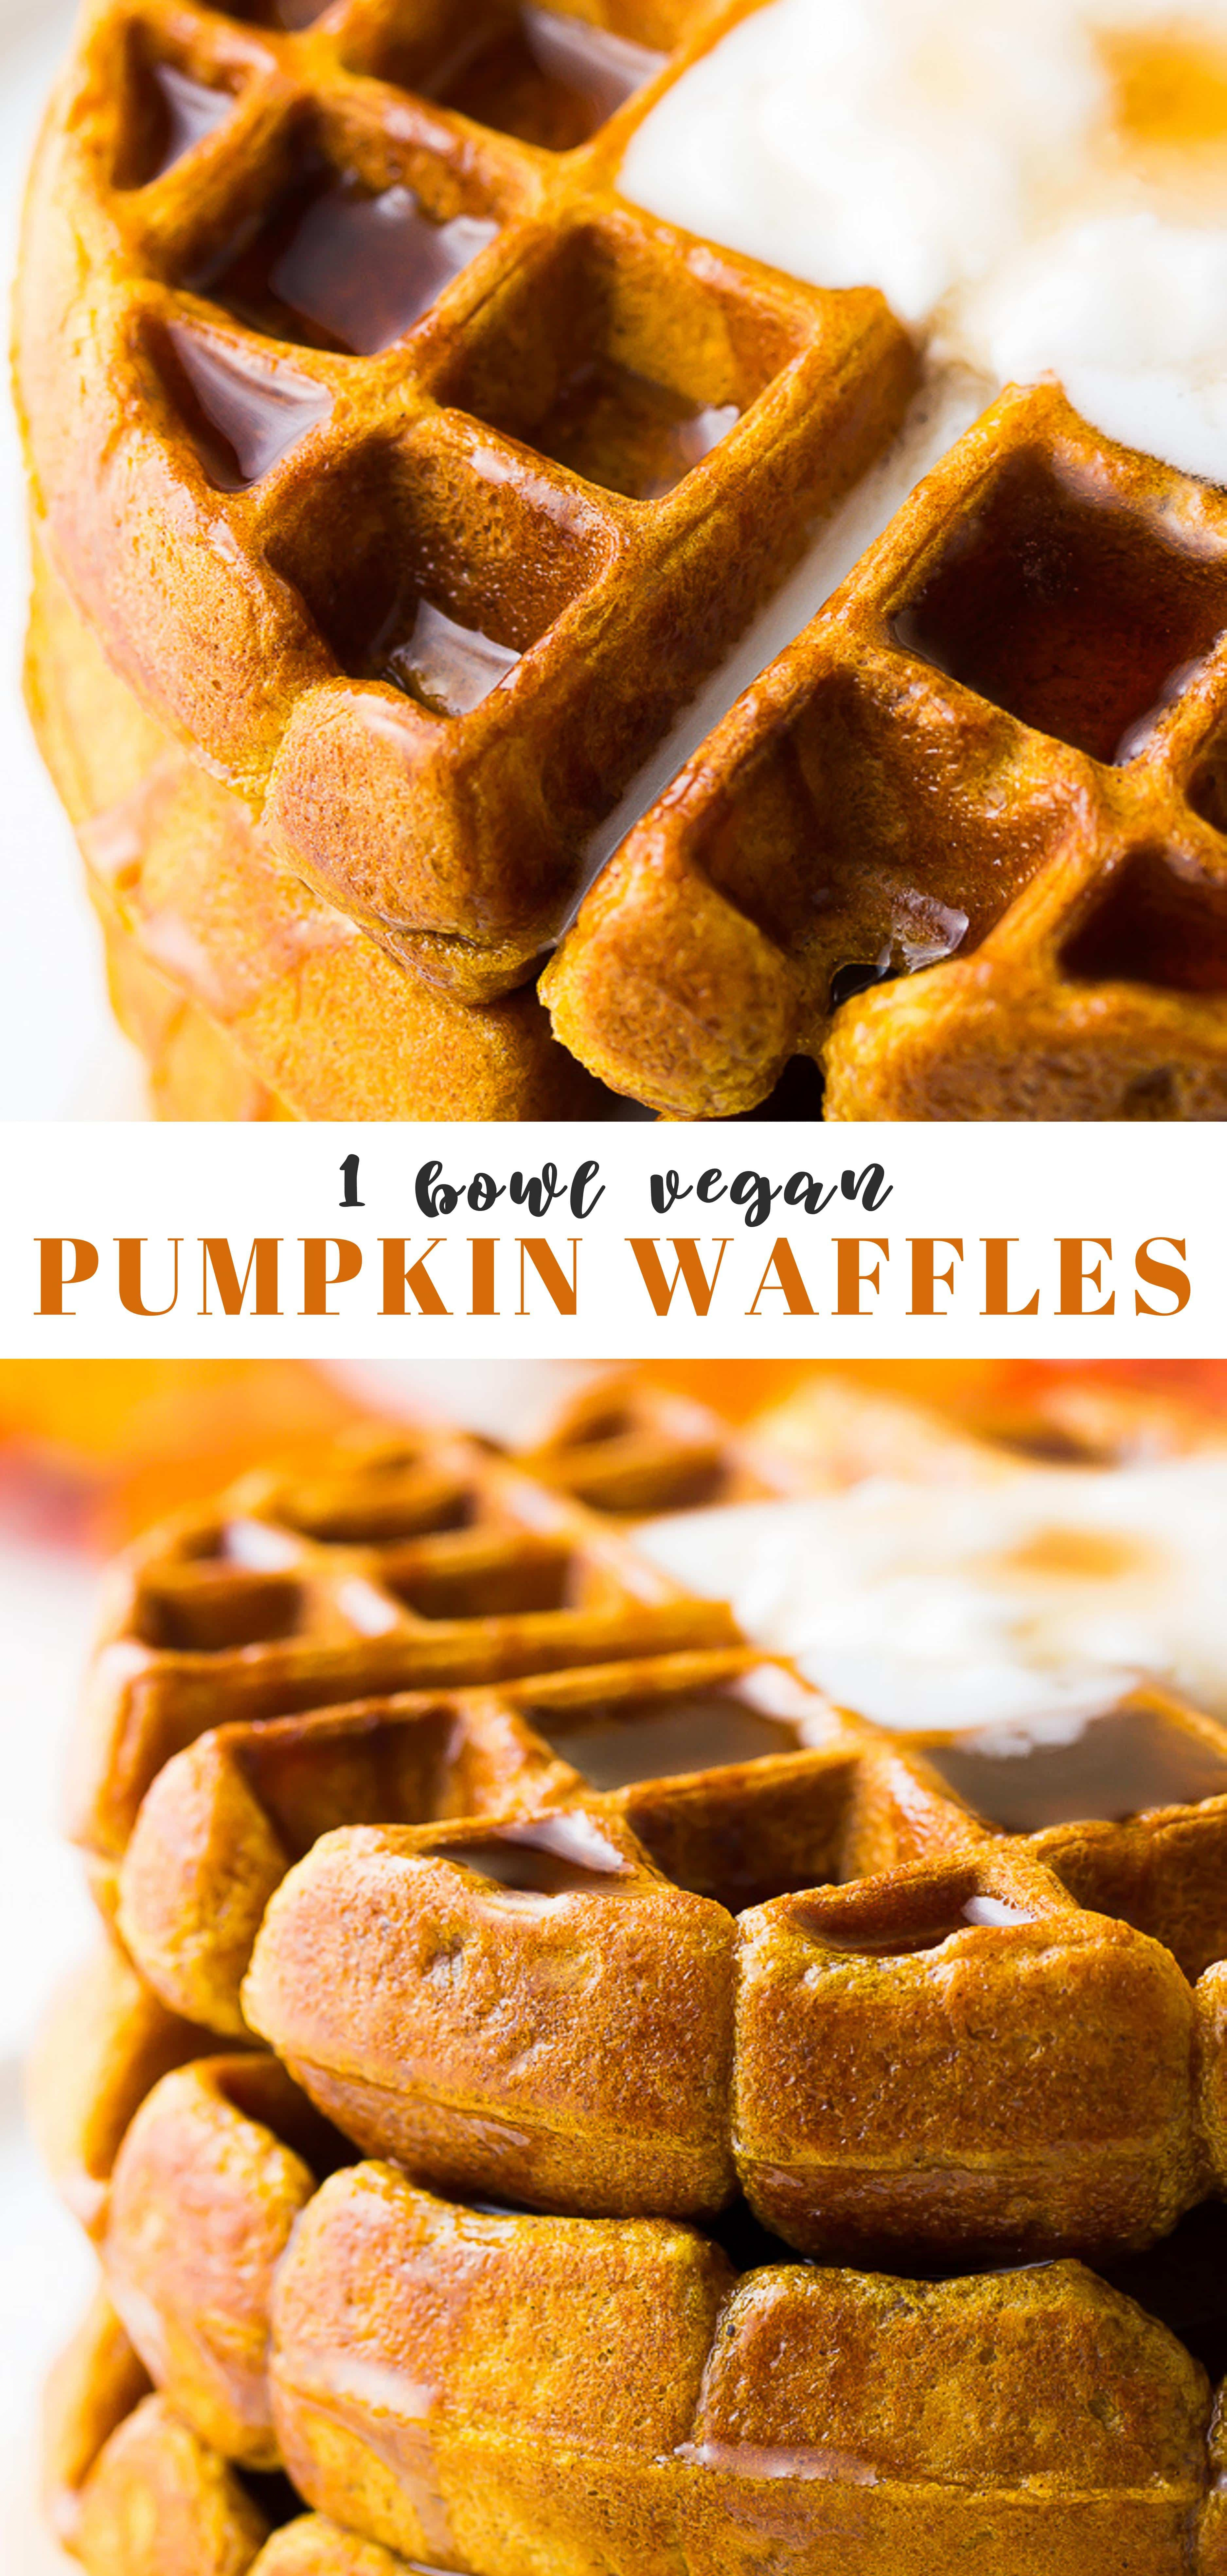 These Vegan Pumpkin Waffles Are Full Of Pumpkin Spice Goodness And Are The Perfect Fall Weekend Breakfast Pumpkin Waffles Fall Vegan Recipes Pumpkin Breakfast